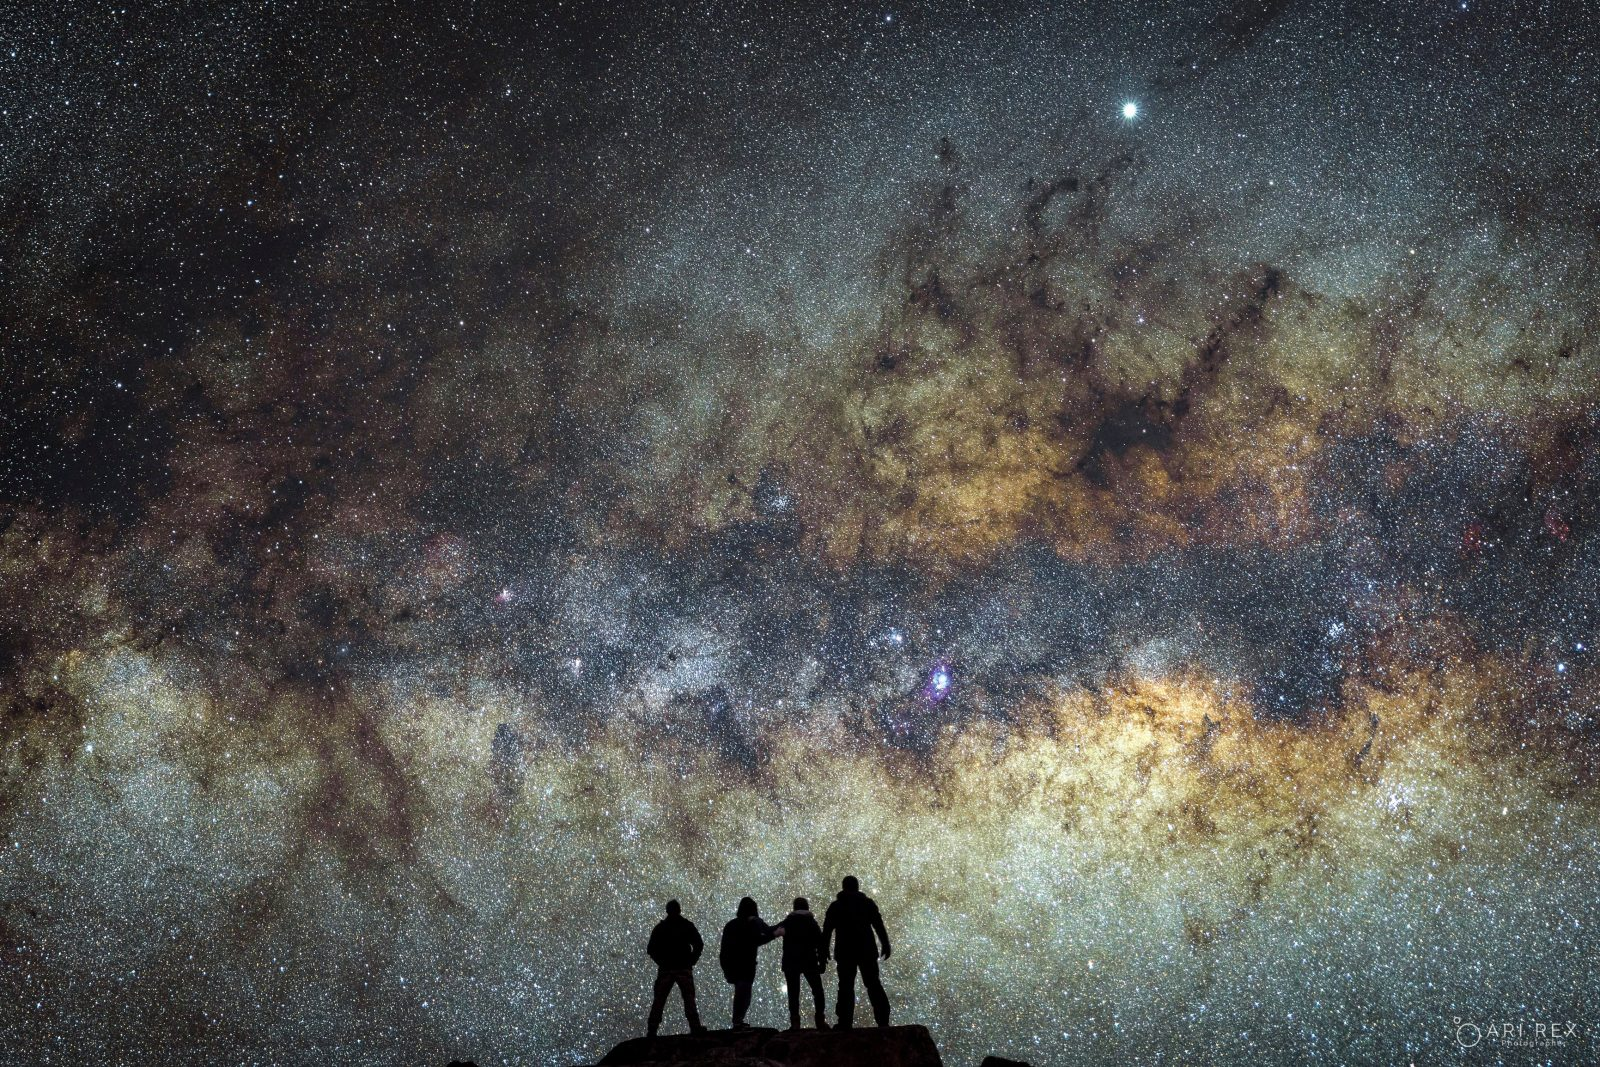 A portrait of a group of nightscapers with the Milky Way